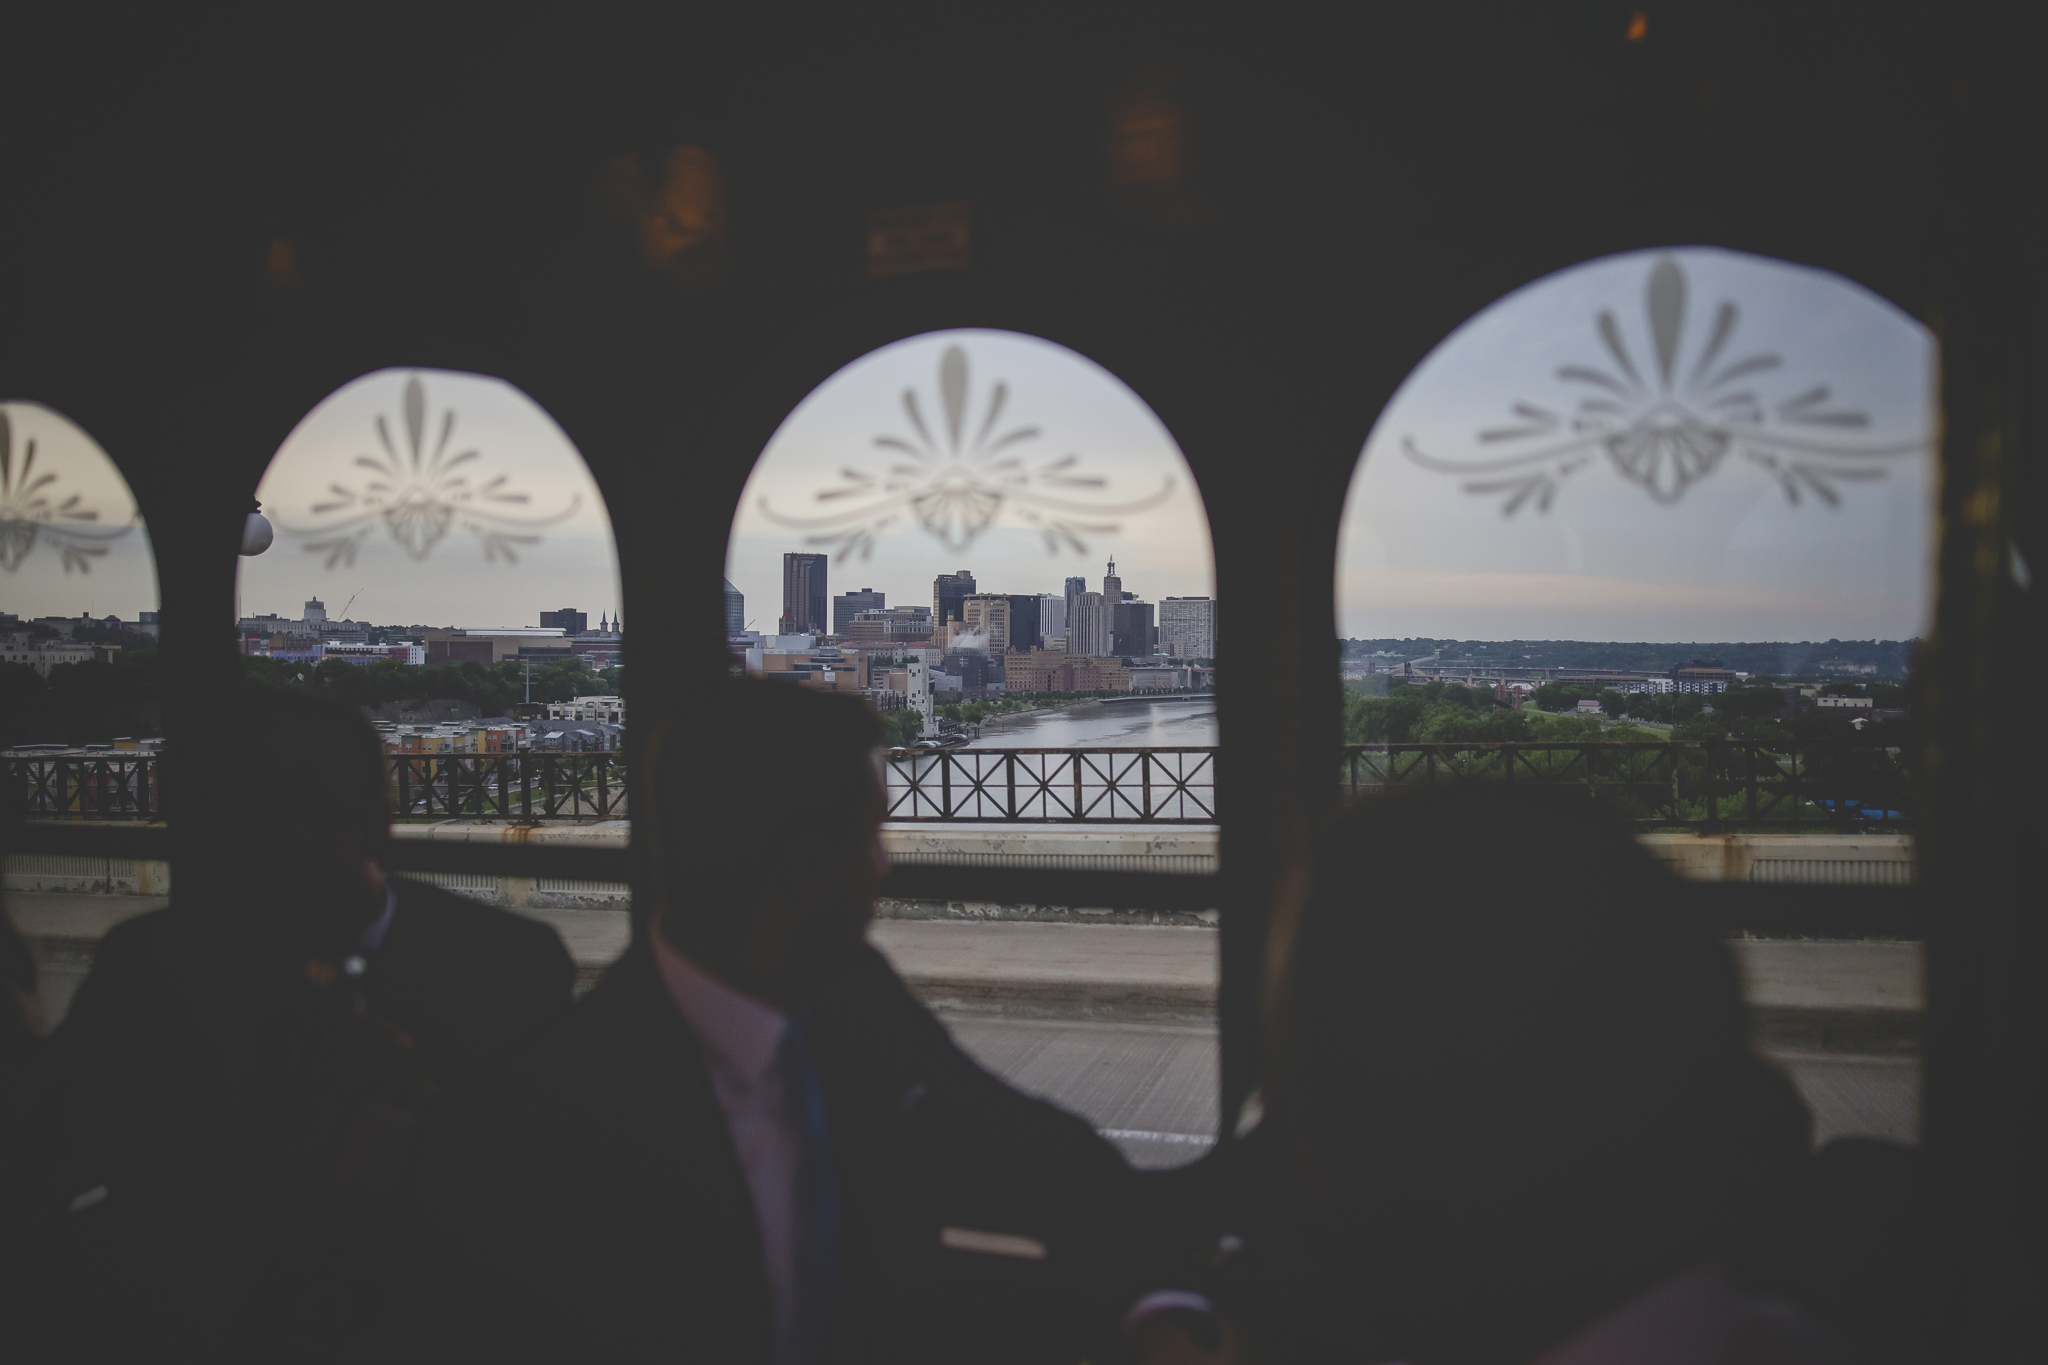 lowertown event center saint paul wedding photographer-13.jpg